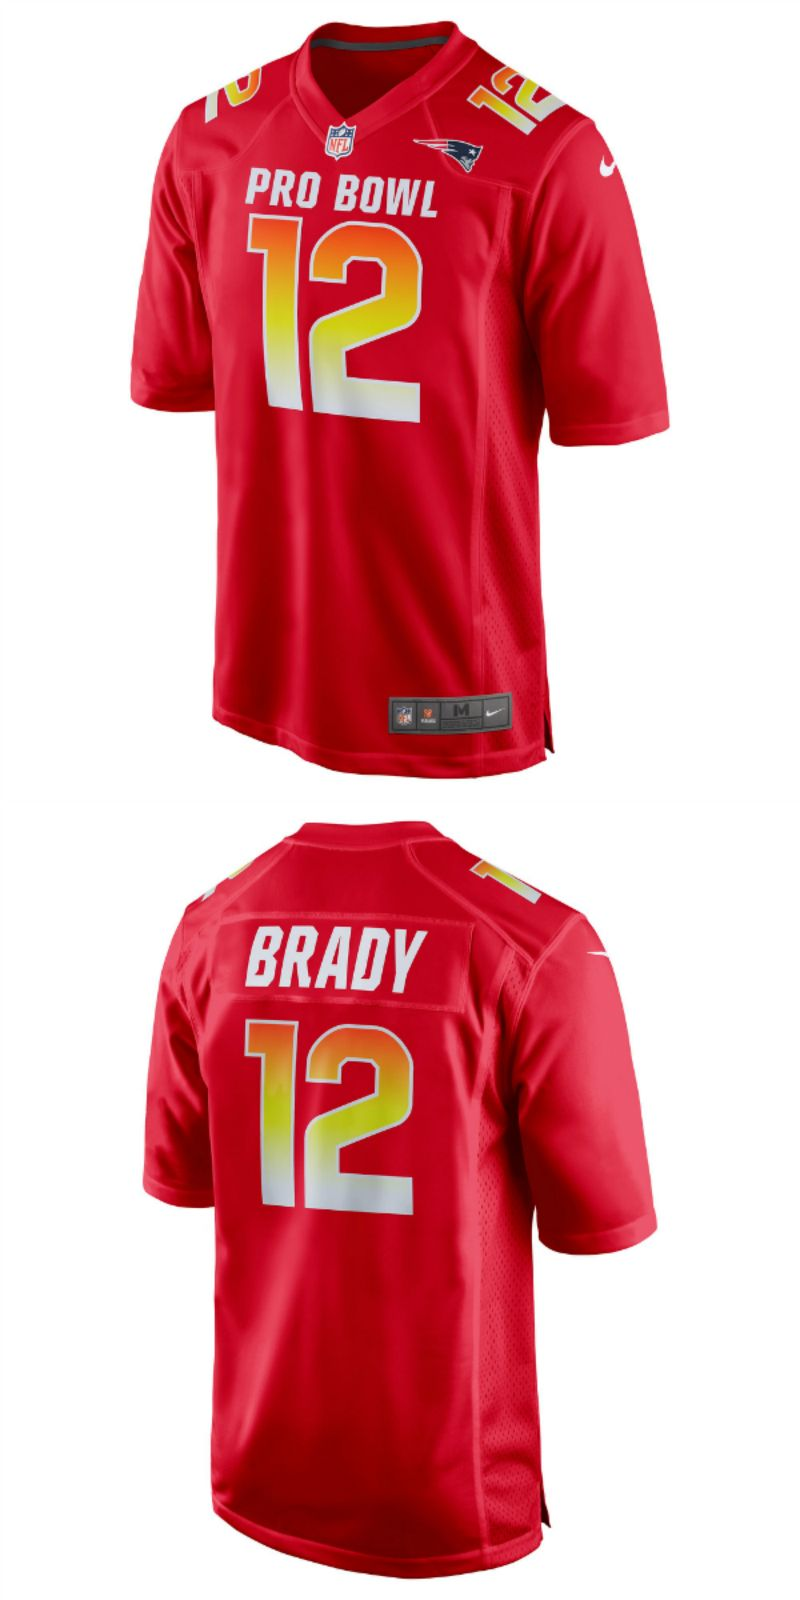 sale retailer 9ac76 4f3d8 UP TO 70% OFF. Tom Brady AFC Nike 2018 Pro Bowl Game Jersey ...